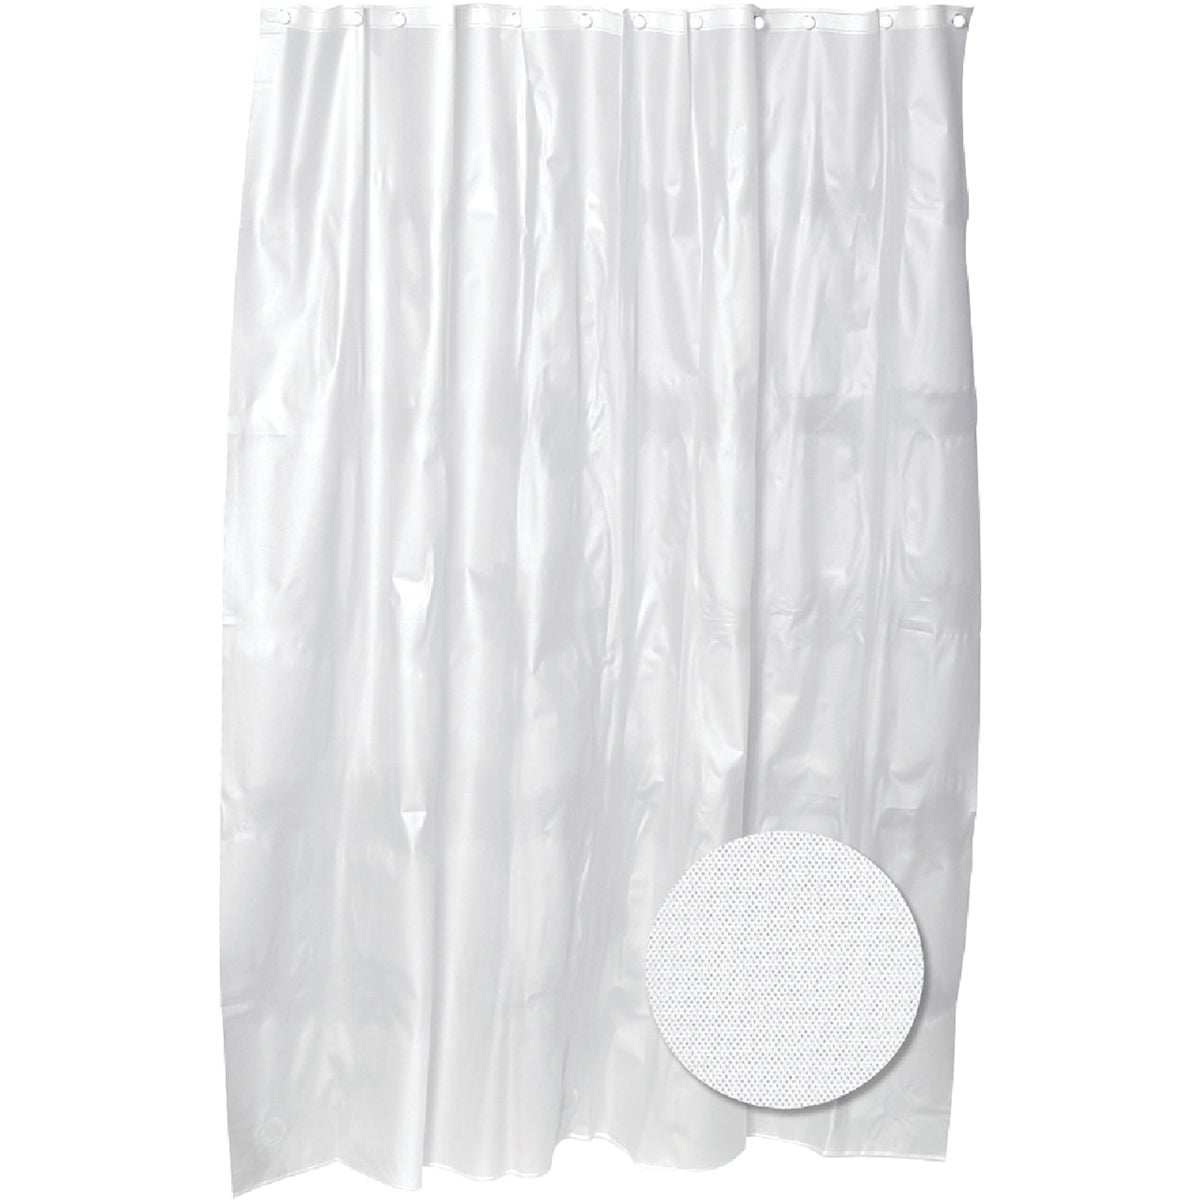 CLEAR PEVA SHOWER LINER - PEV1980291 by Zenith Prod Corp